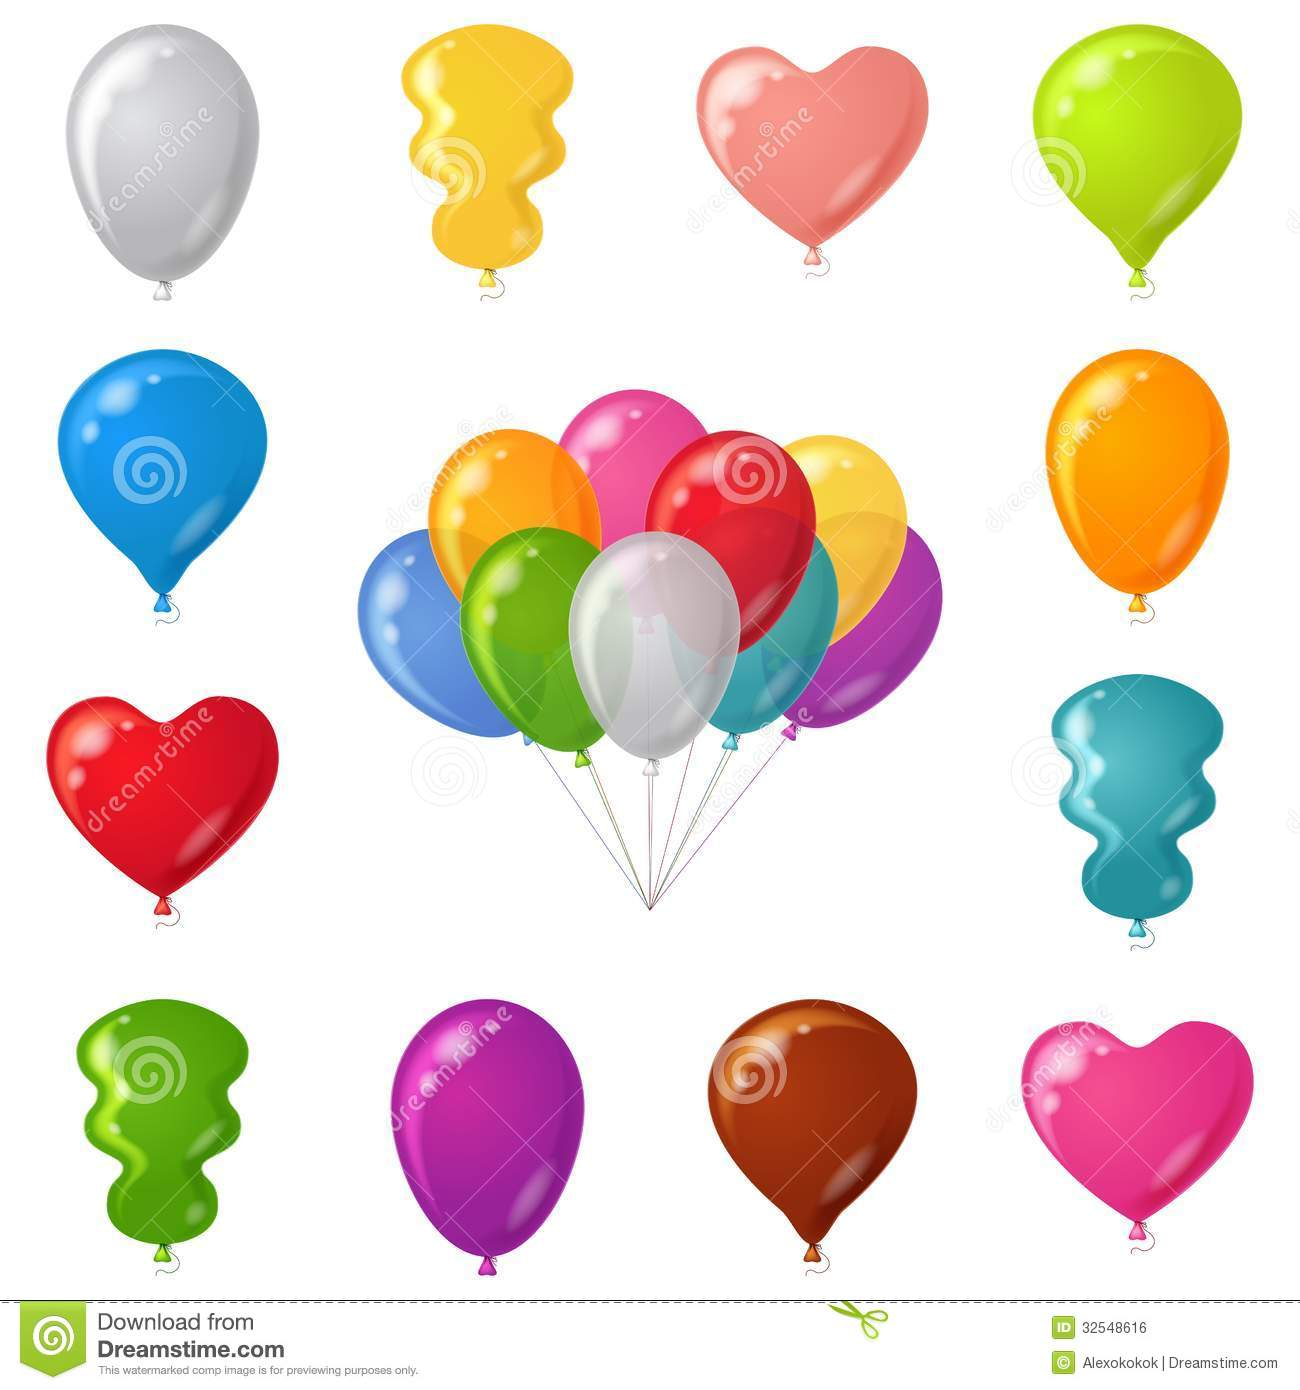 Festive balloons set royalty free stock image image - Globos con formas ...